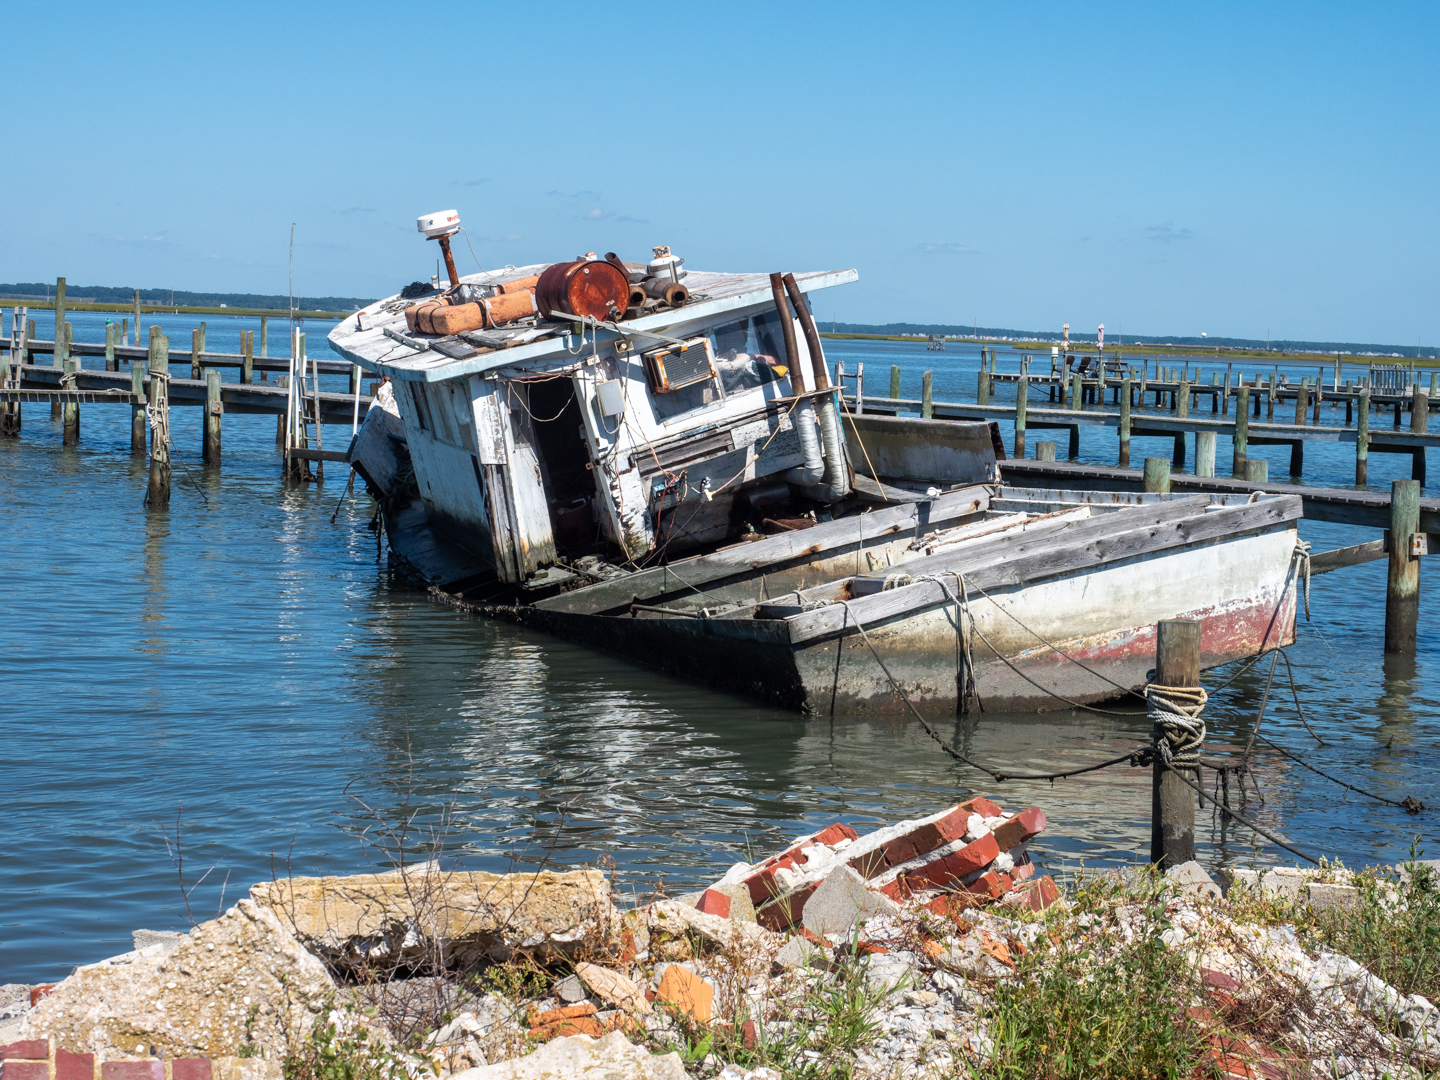 Color Photograph of a sunken boat on Chincoteague Island